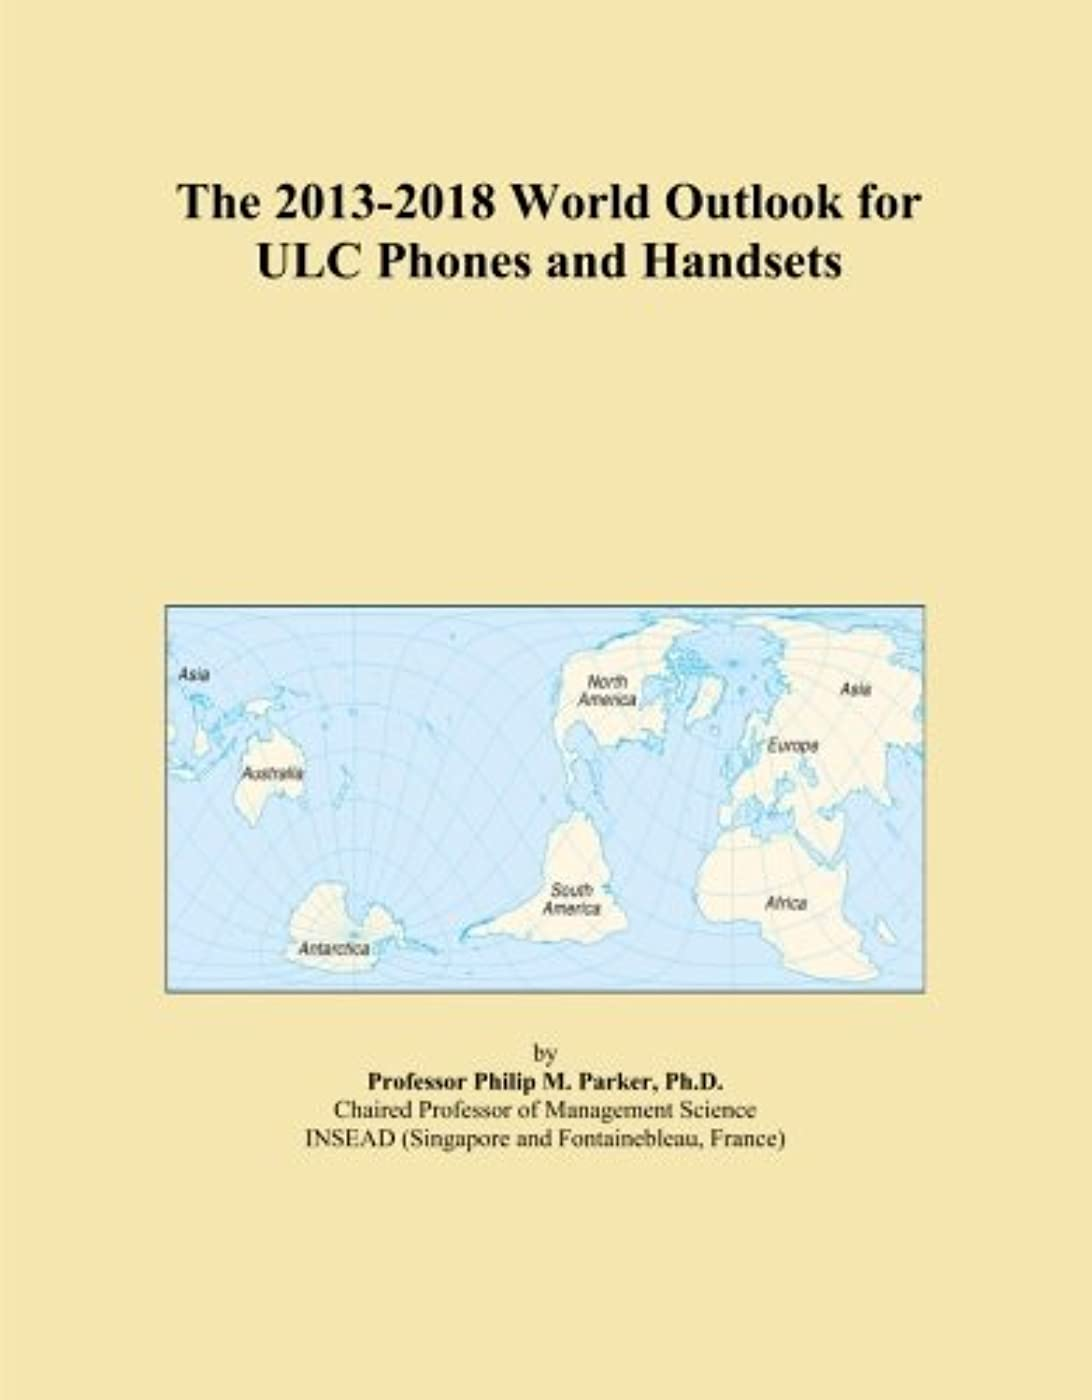 タンザニア意図頂点The 2013-2018 World Outlook for ULC Phones and Handsets